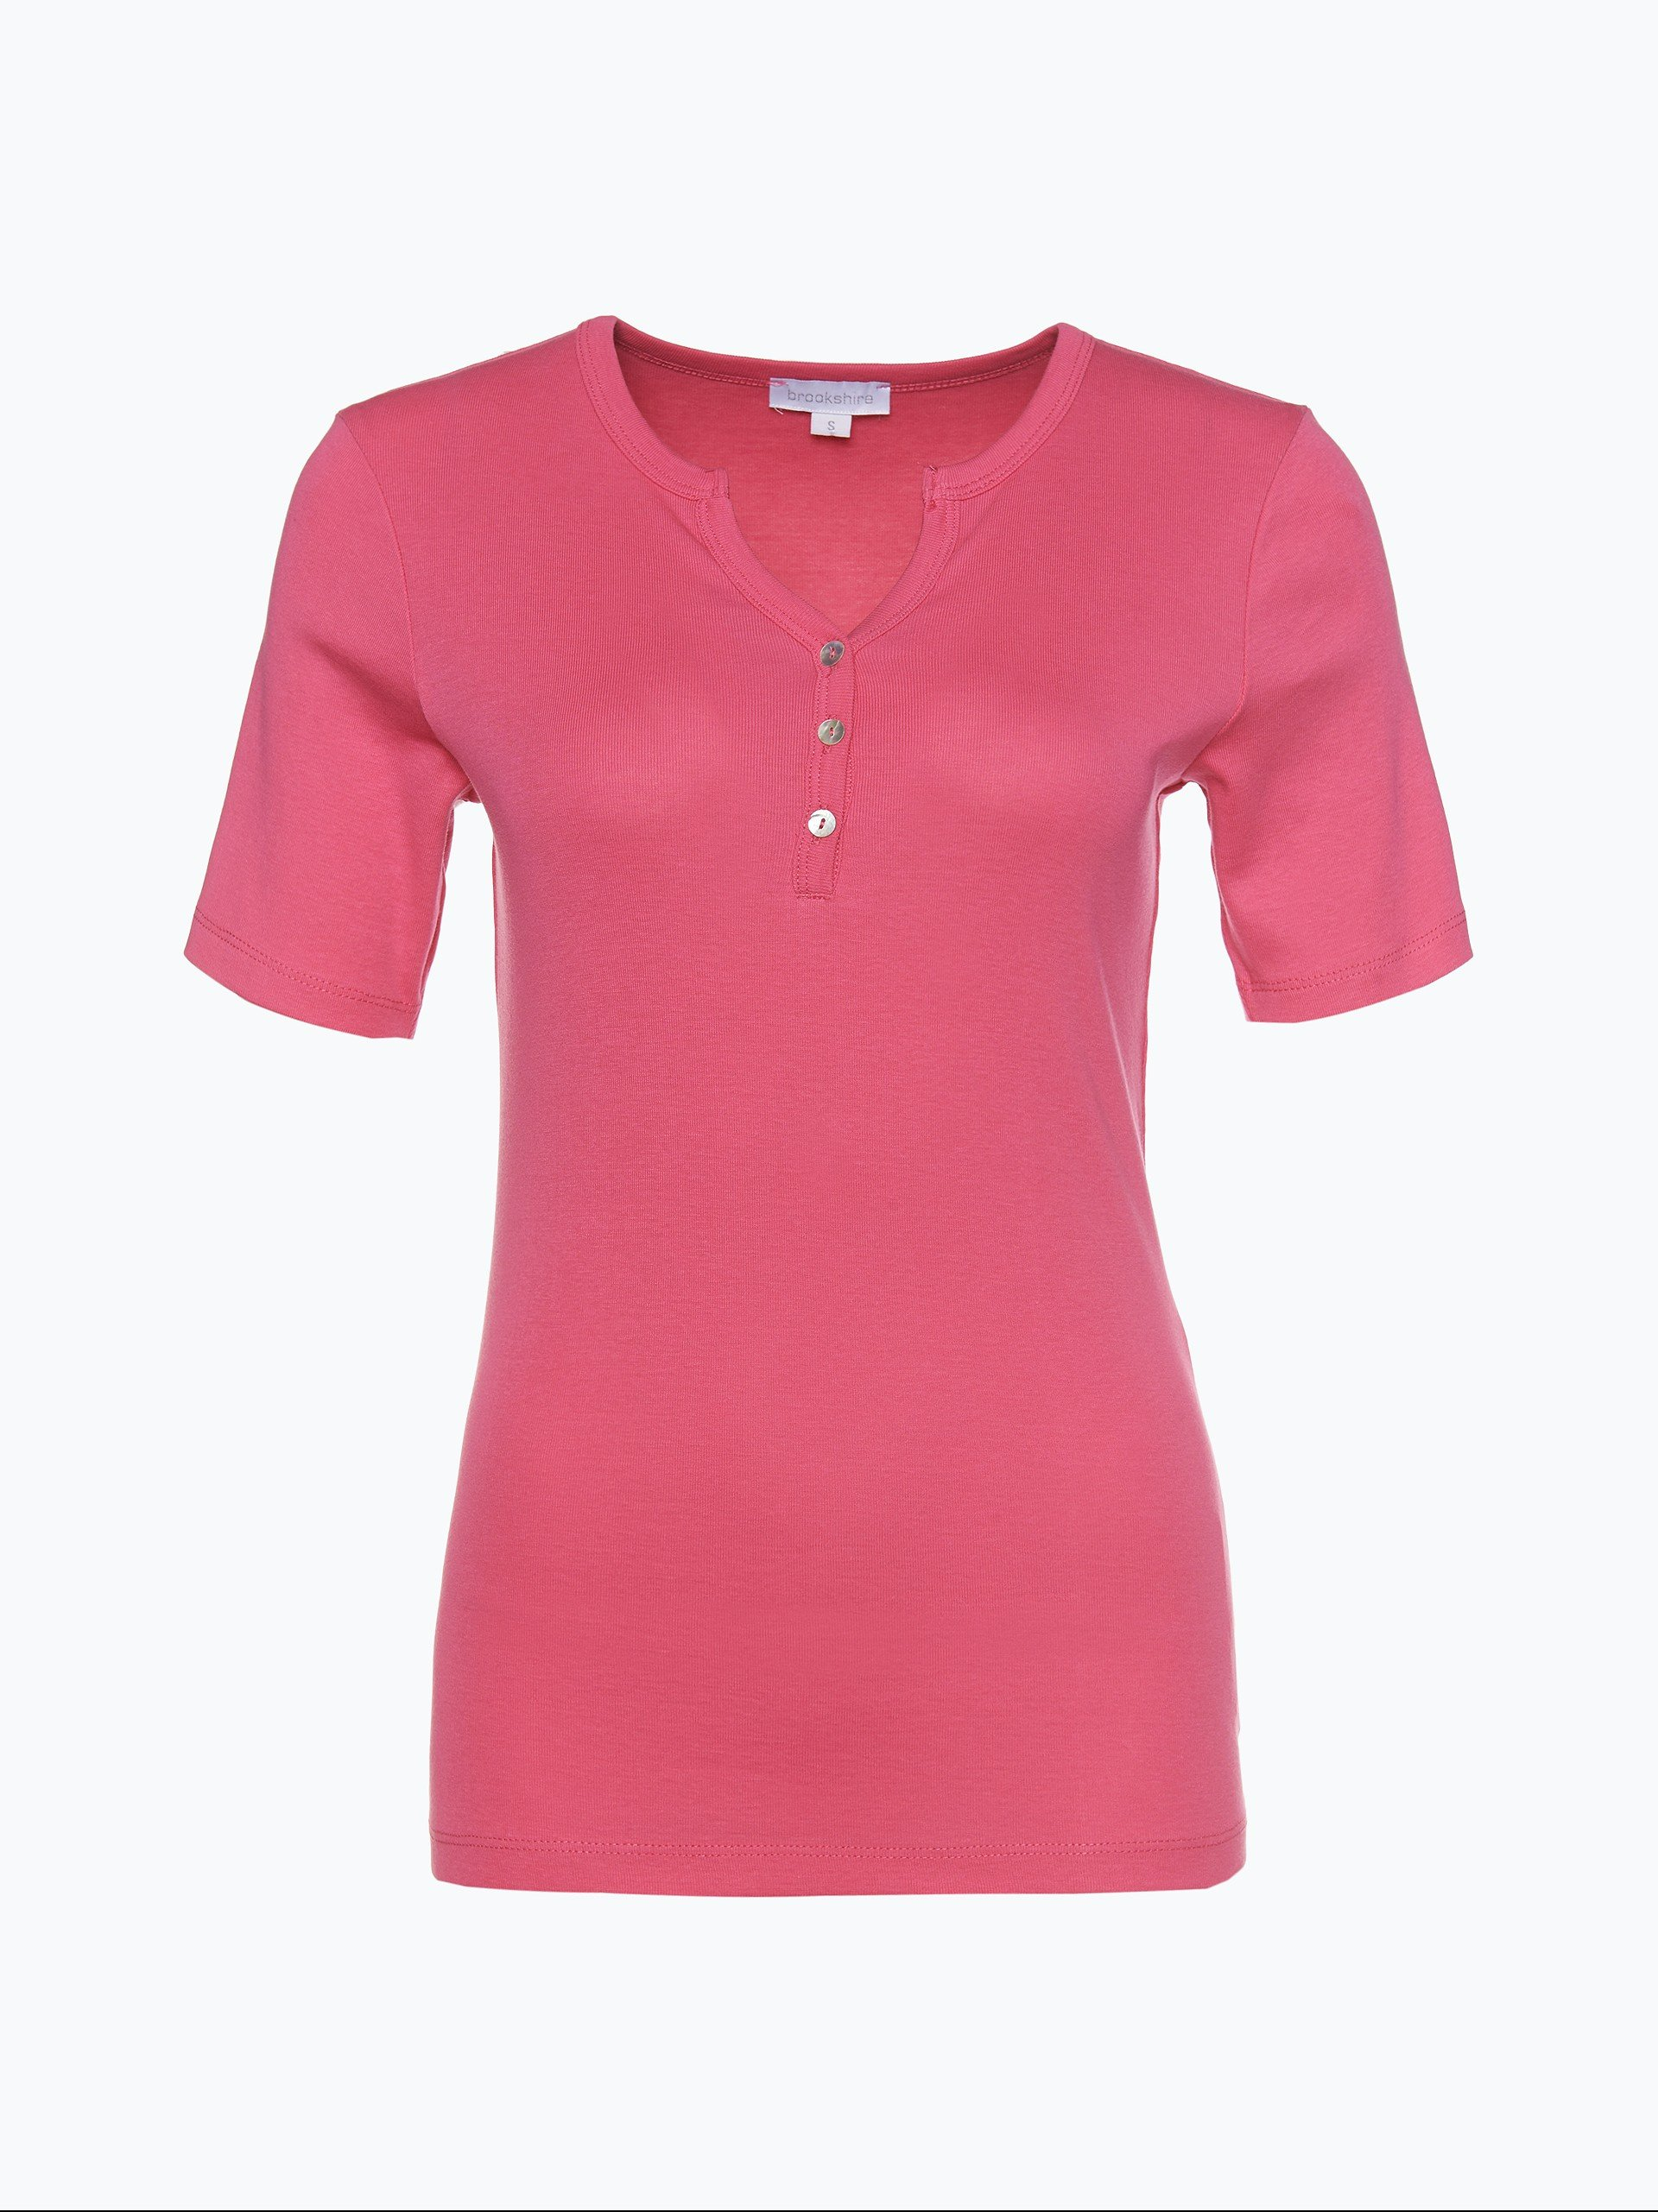 brookshire Damen T-Shirt